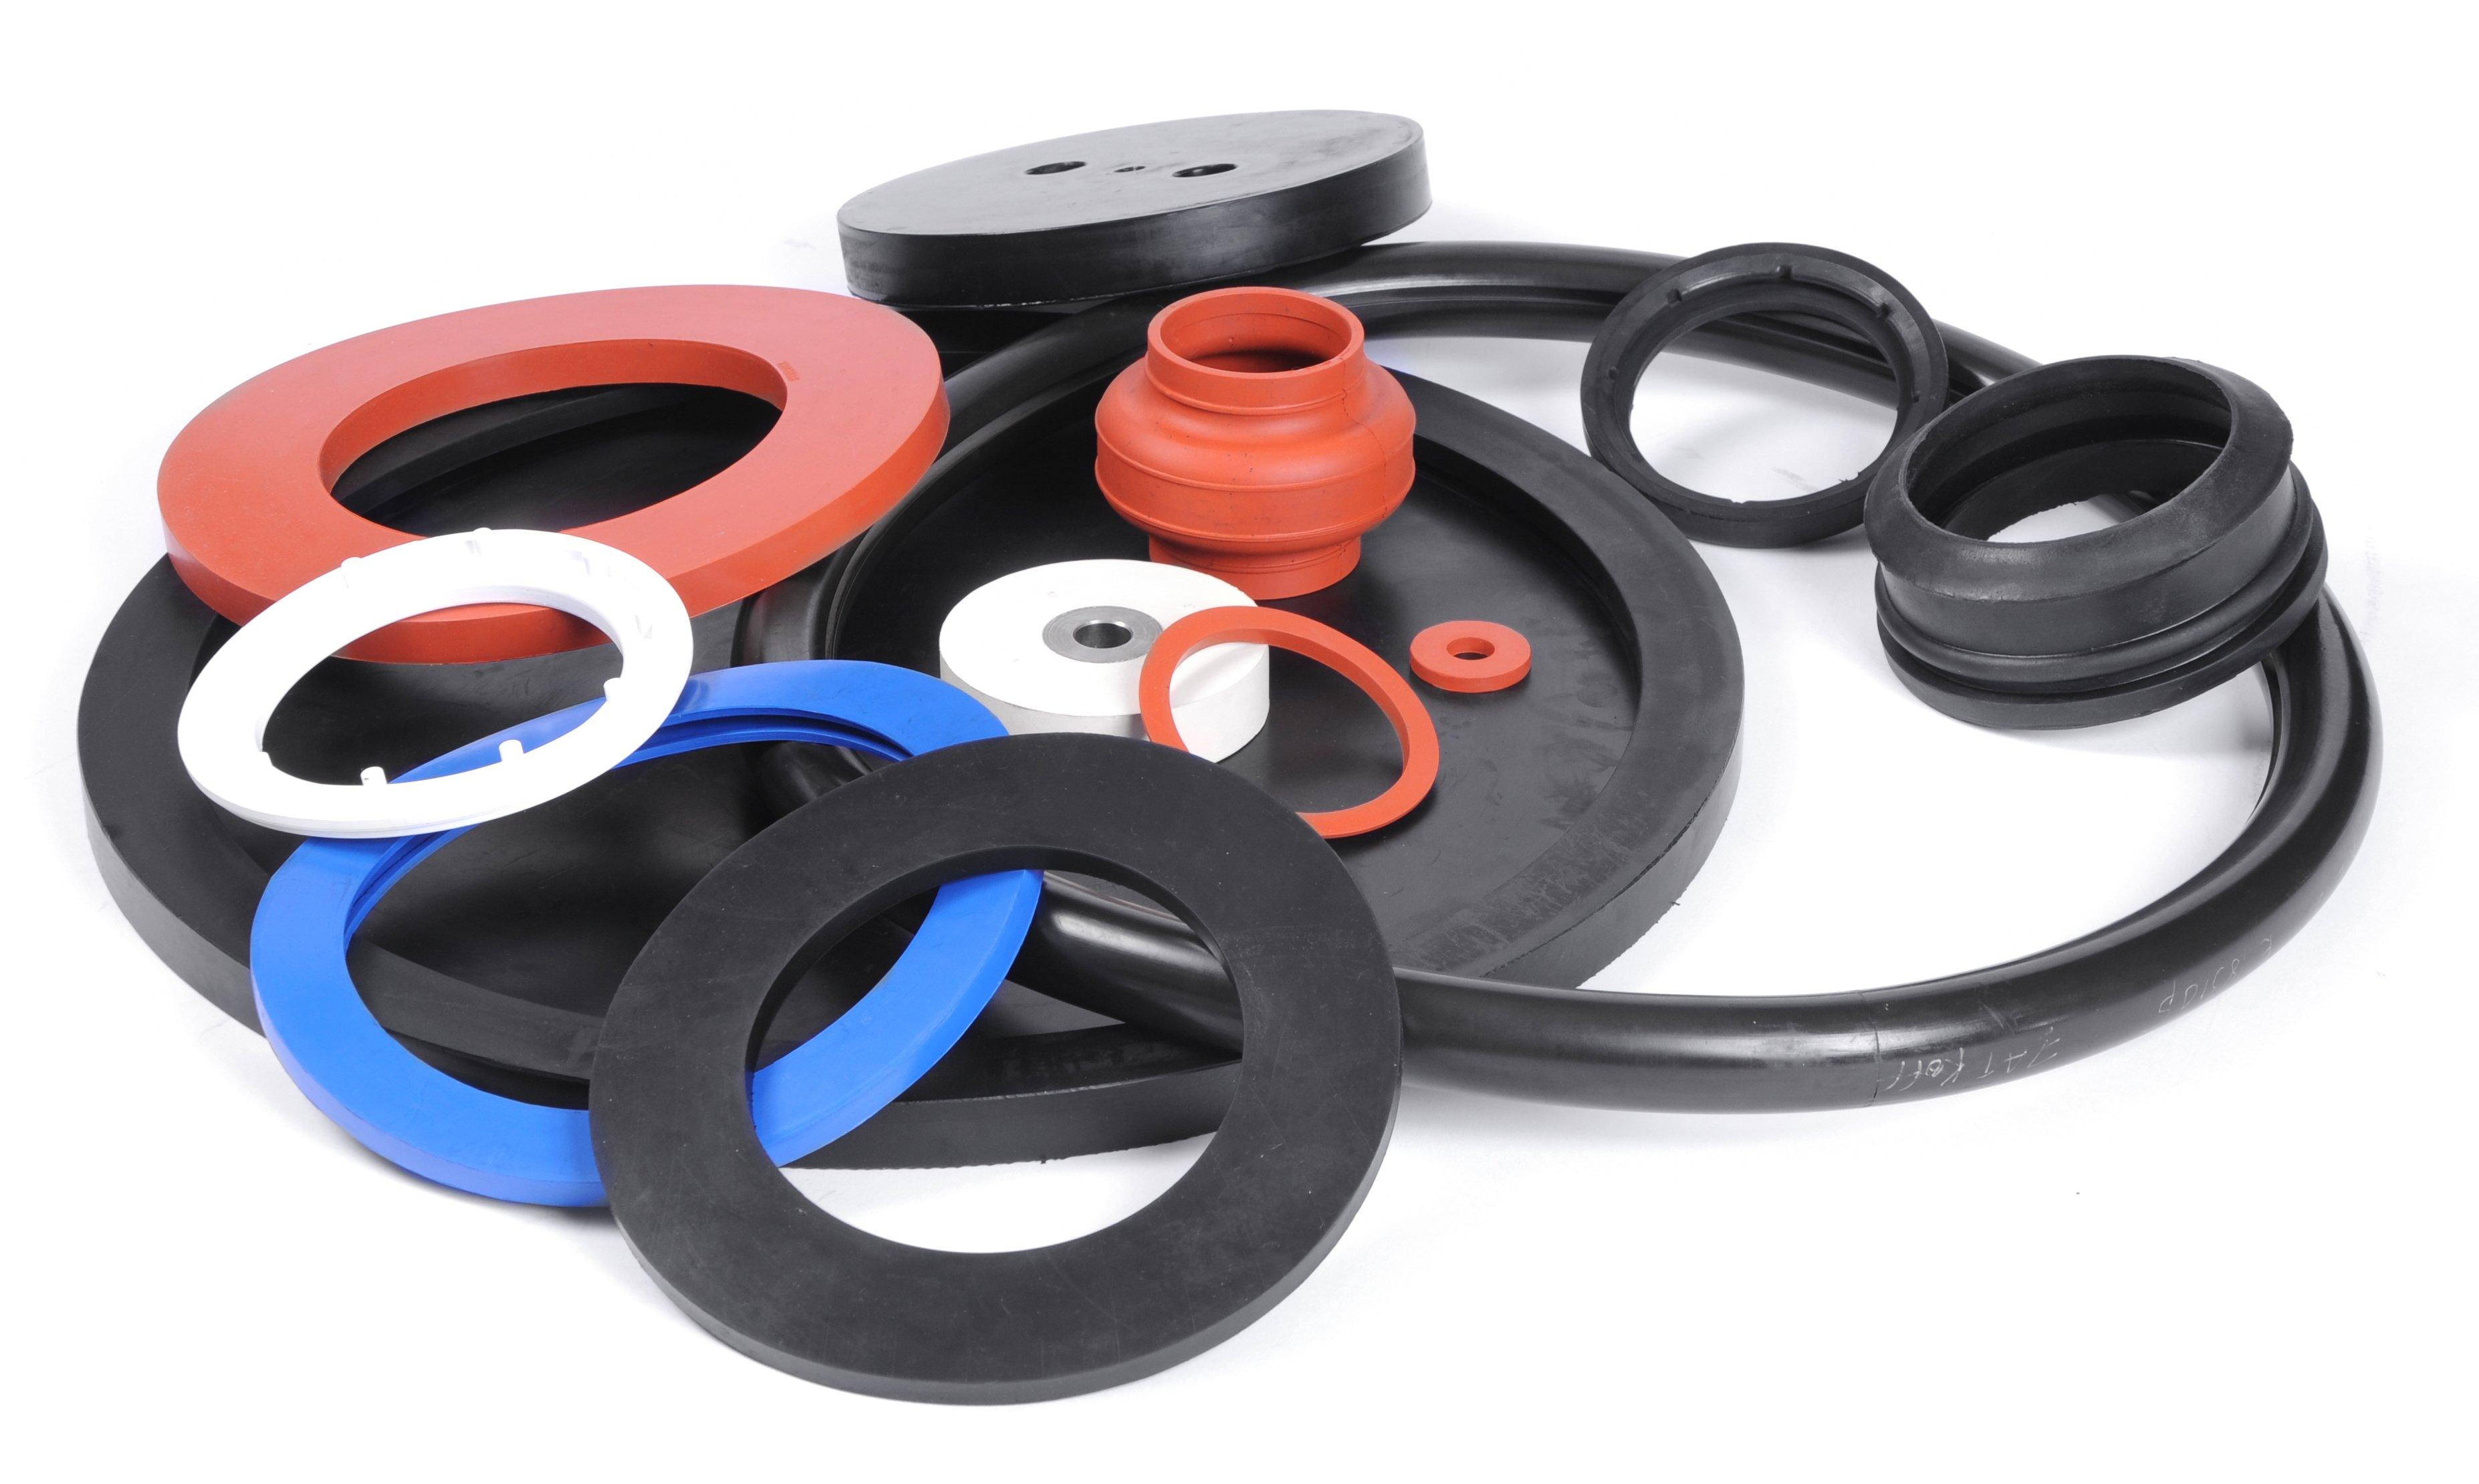 Examples of Molded Gaskets in a Blue, Orange, and Black Colors